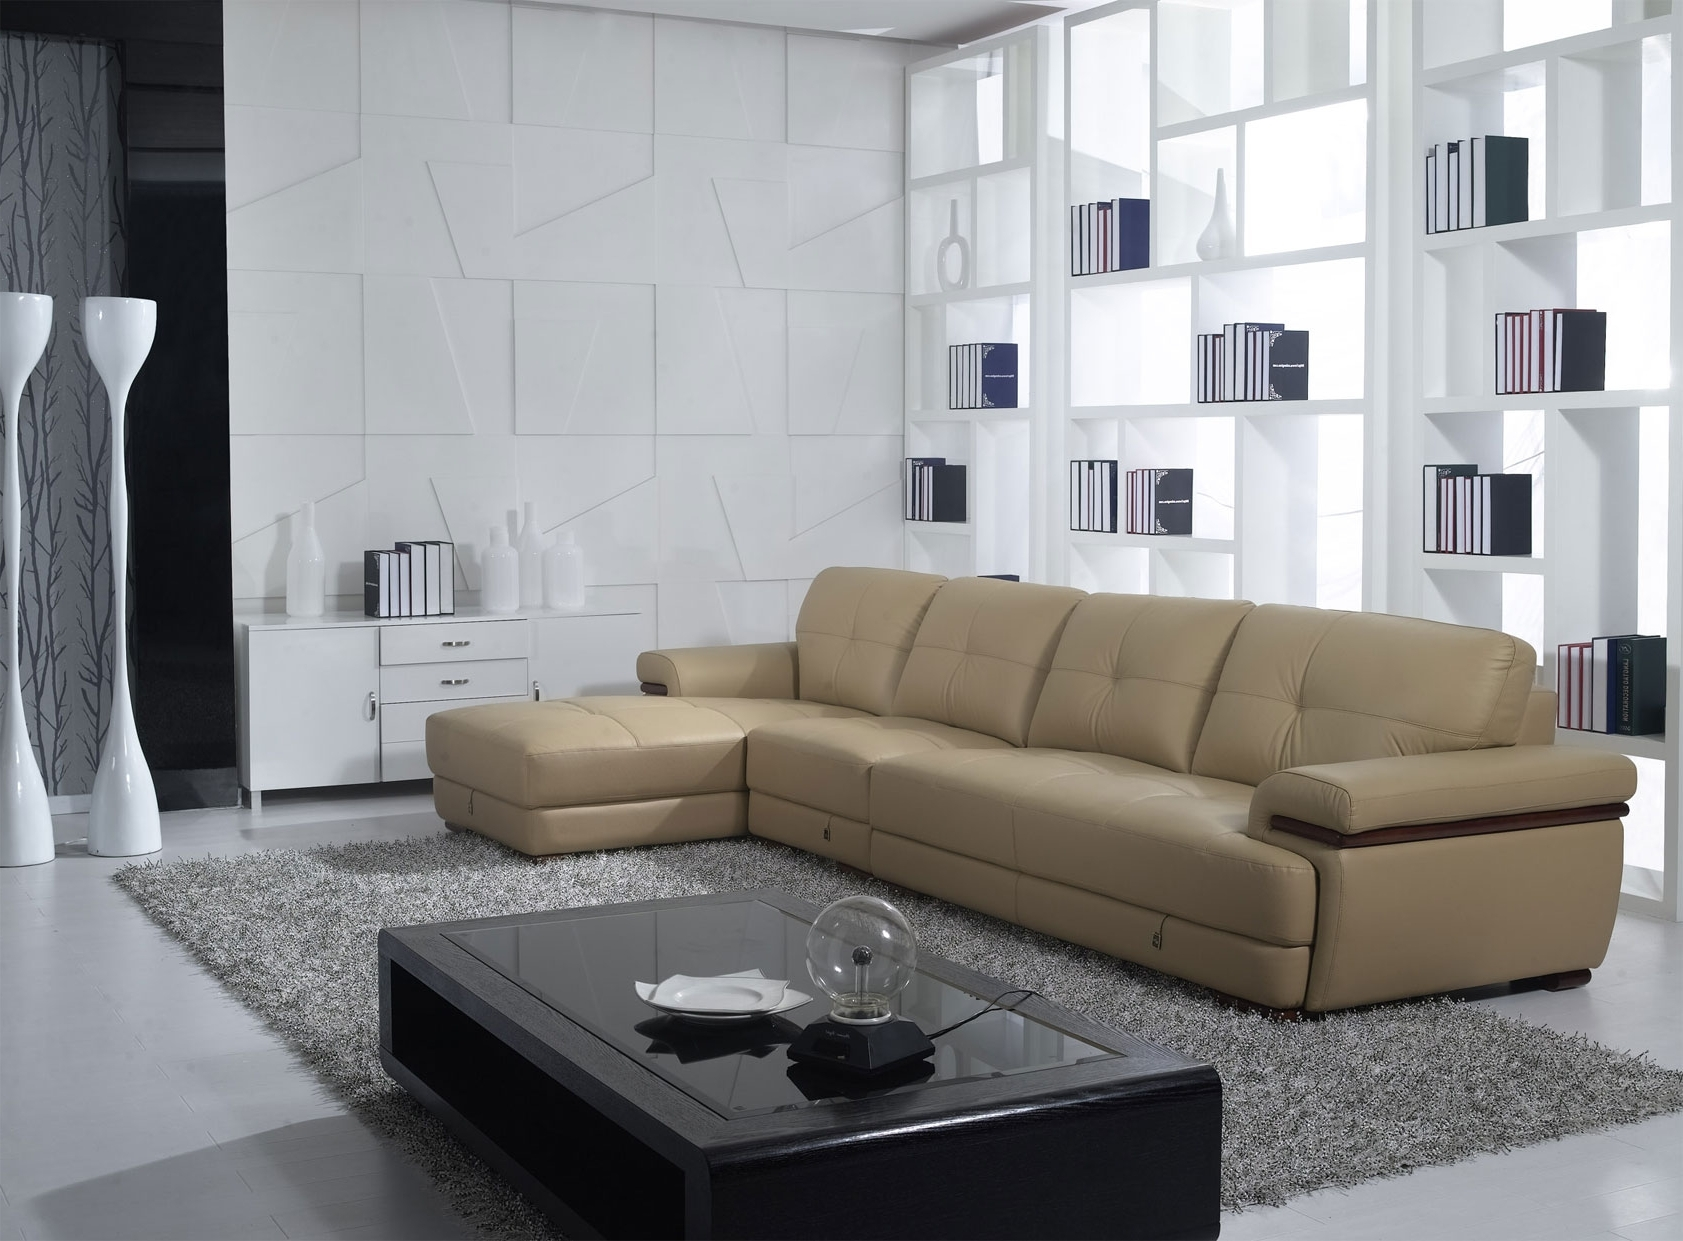 High Quality Sectional Sofas With Current Fancy Quality Sectional Sofas 15 Sofas And Couches Ideas With (View 7 of 20)